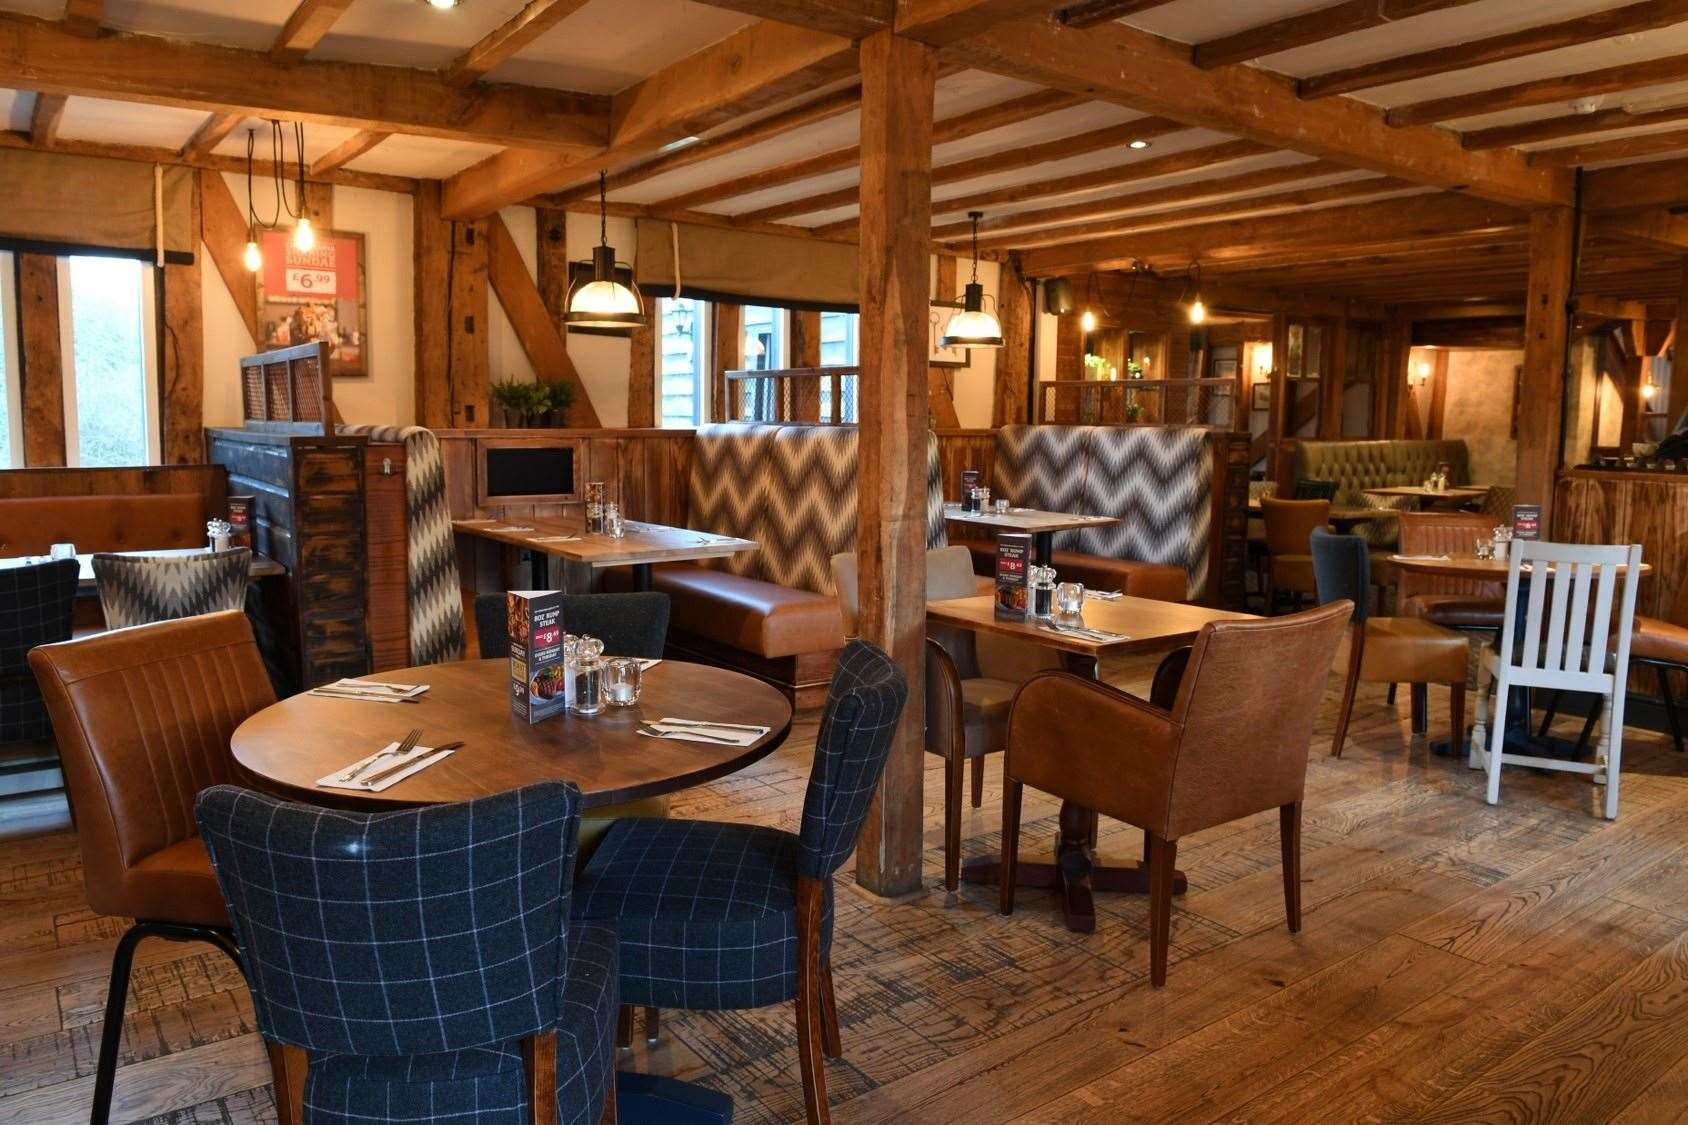 Inside the revamped Rushbrooke Arms (28835445)